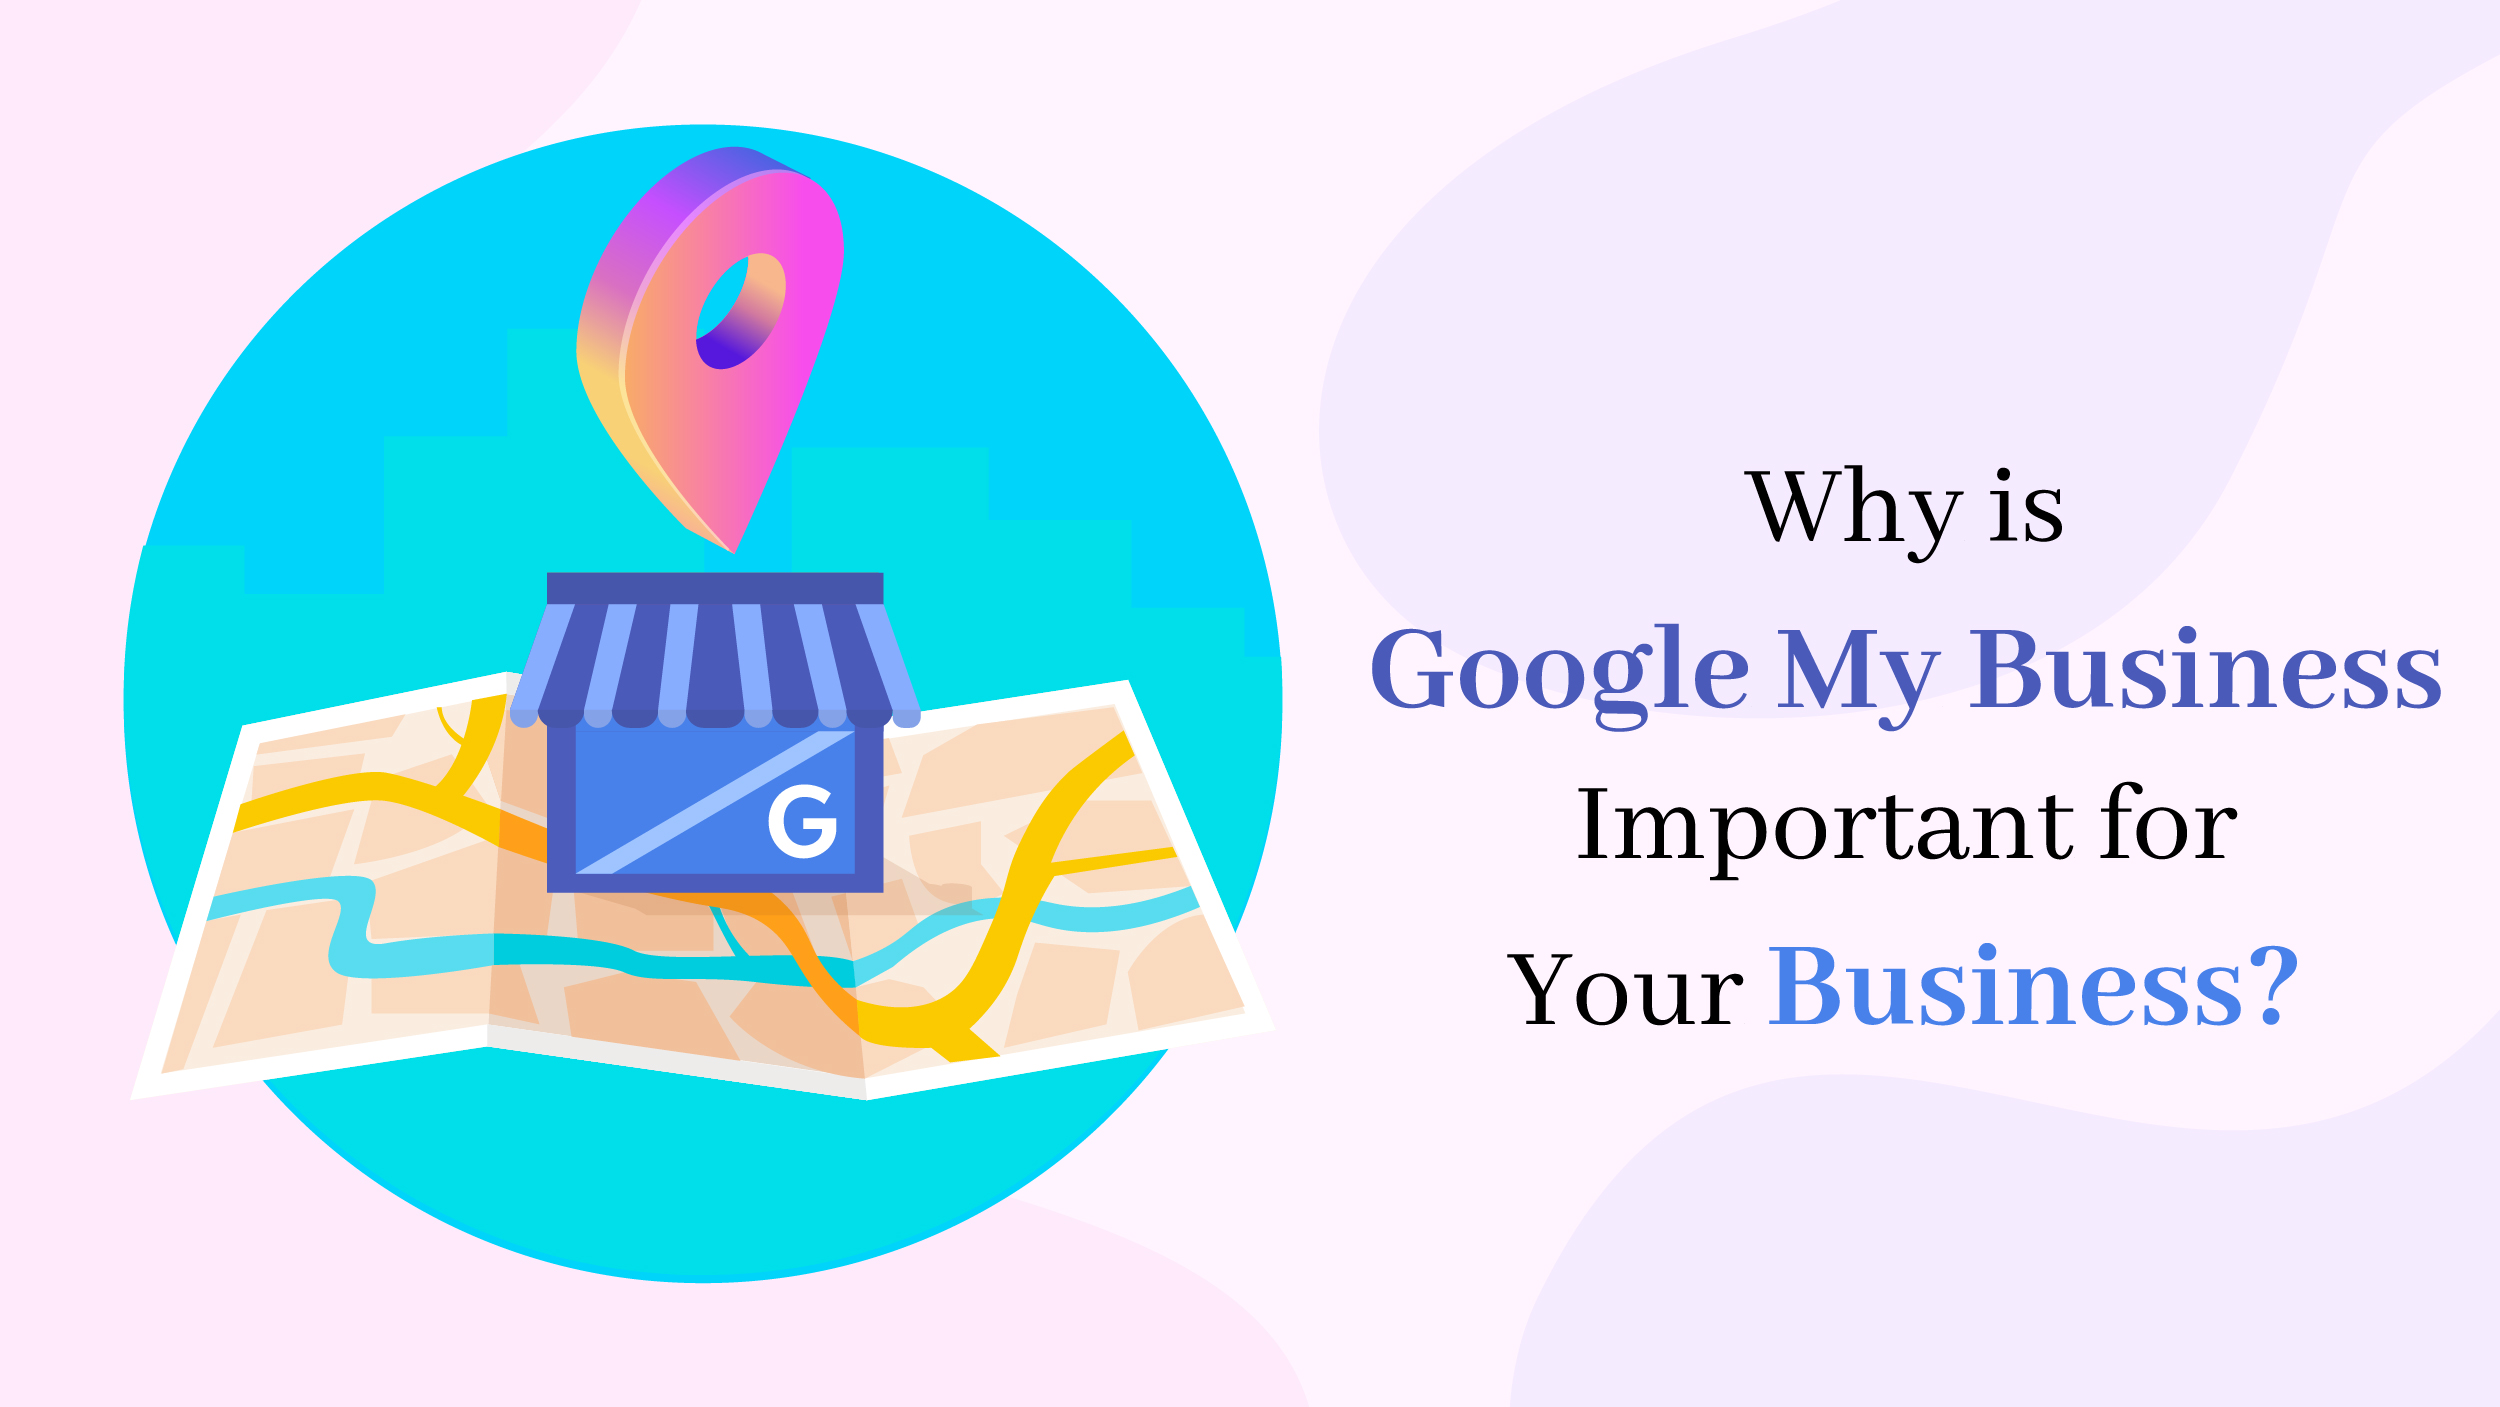 Why is Google My Business Important for Your Business